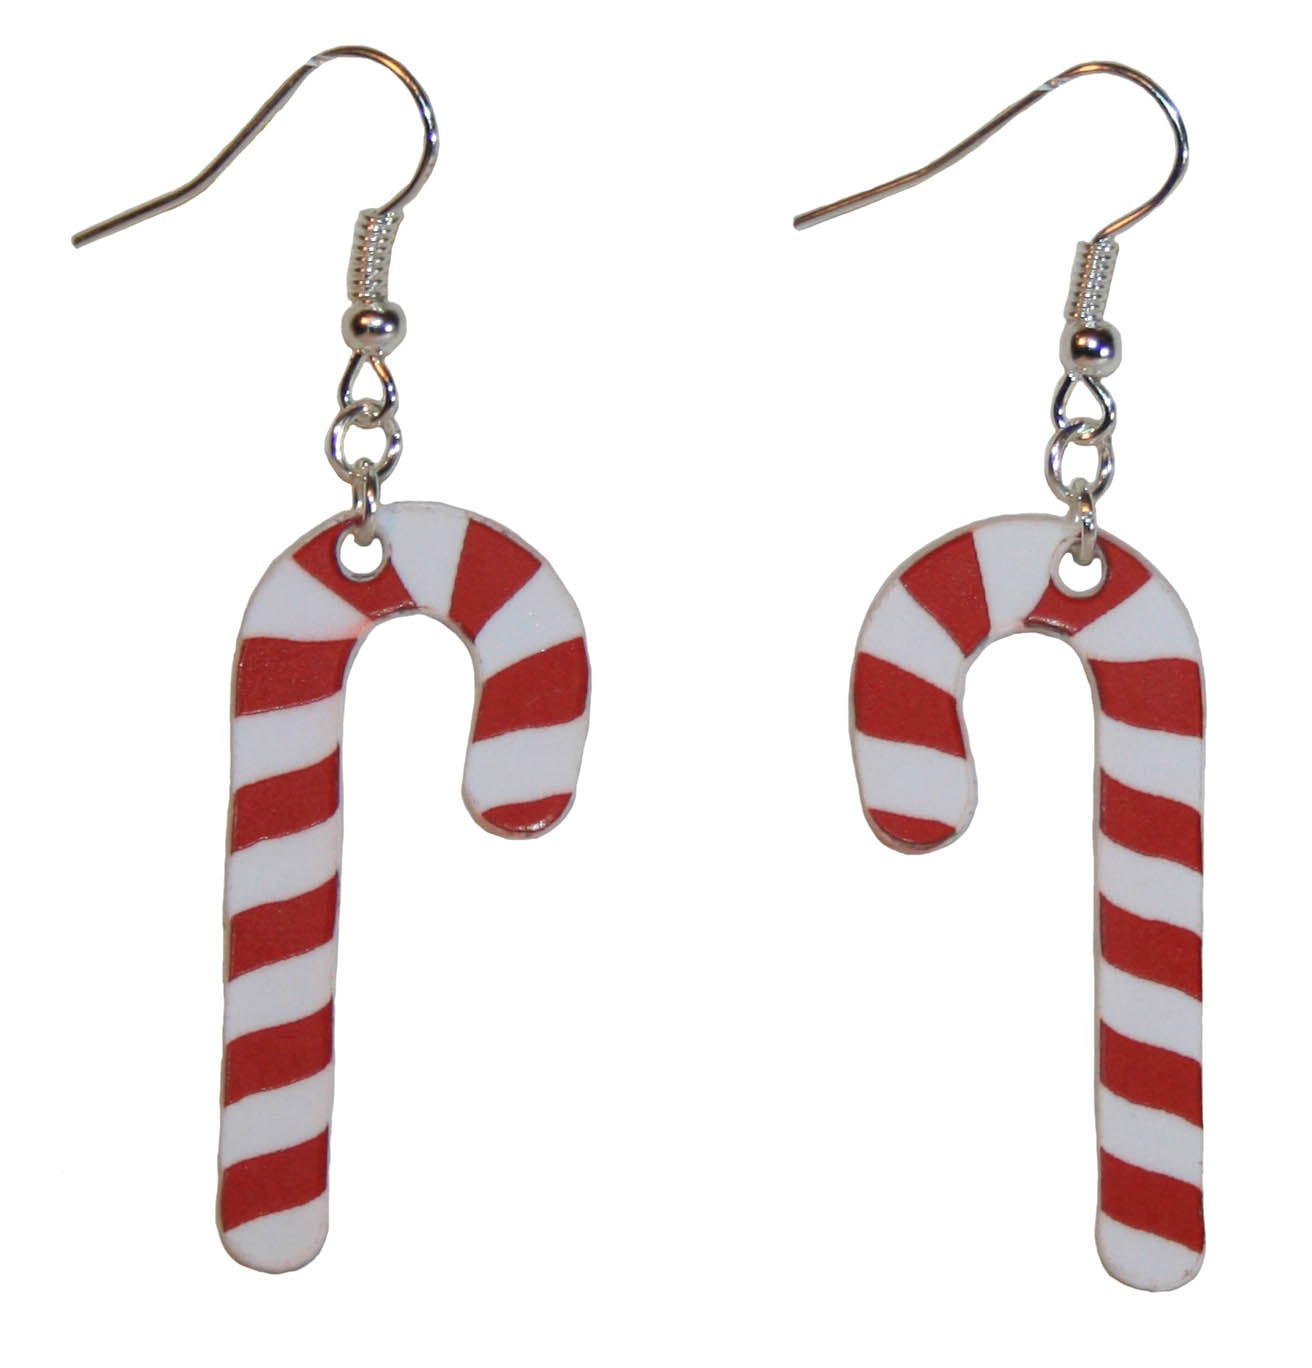 Candy Canes Earrings